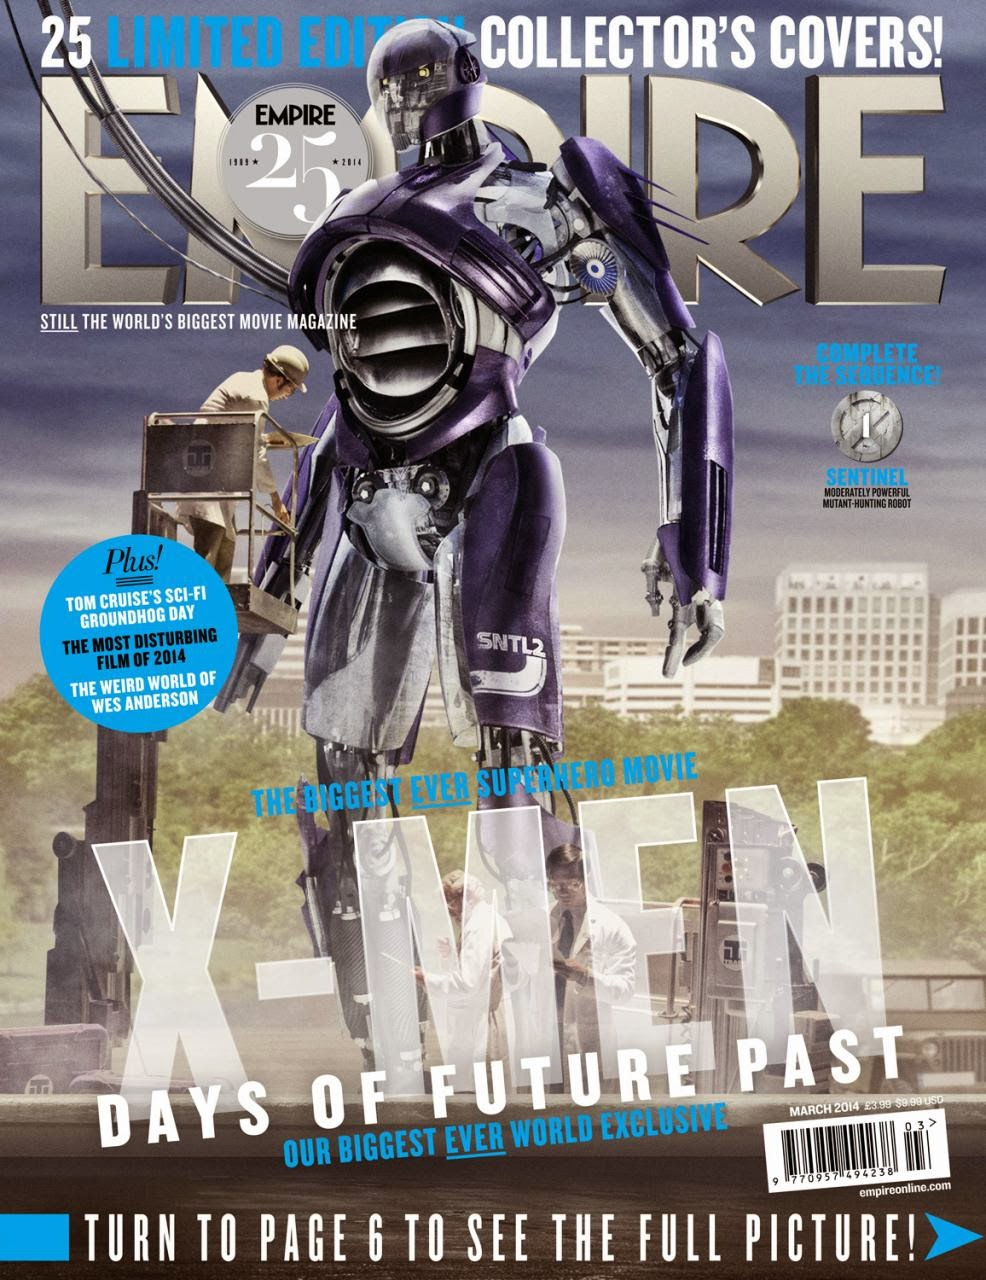 X-MEN DAYS OF FUTURE PAST-Official Poster Banner PROMO EMPIRE COVER-28JANEIRO2014-13